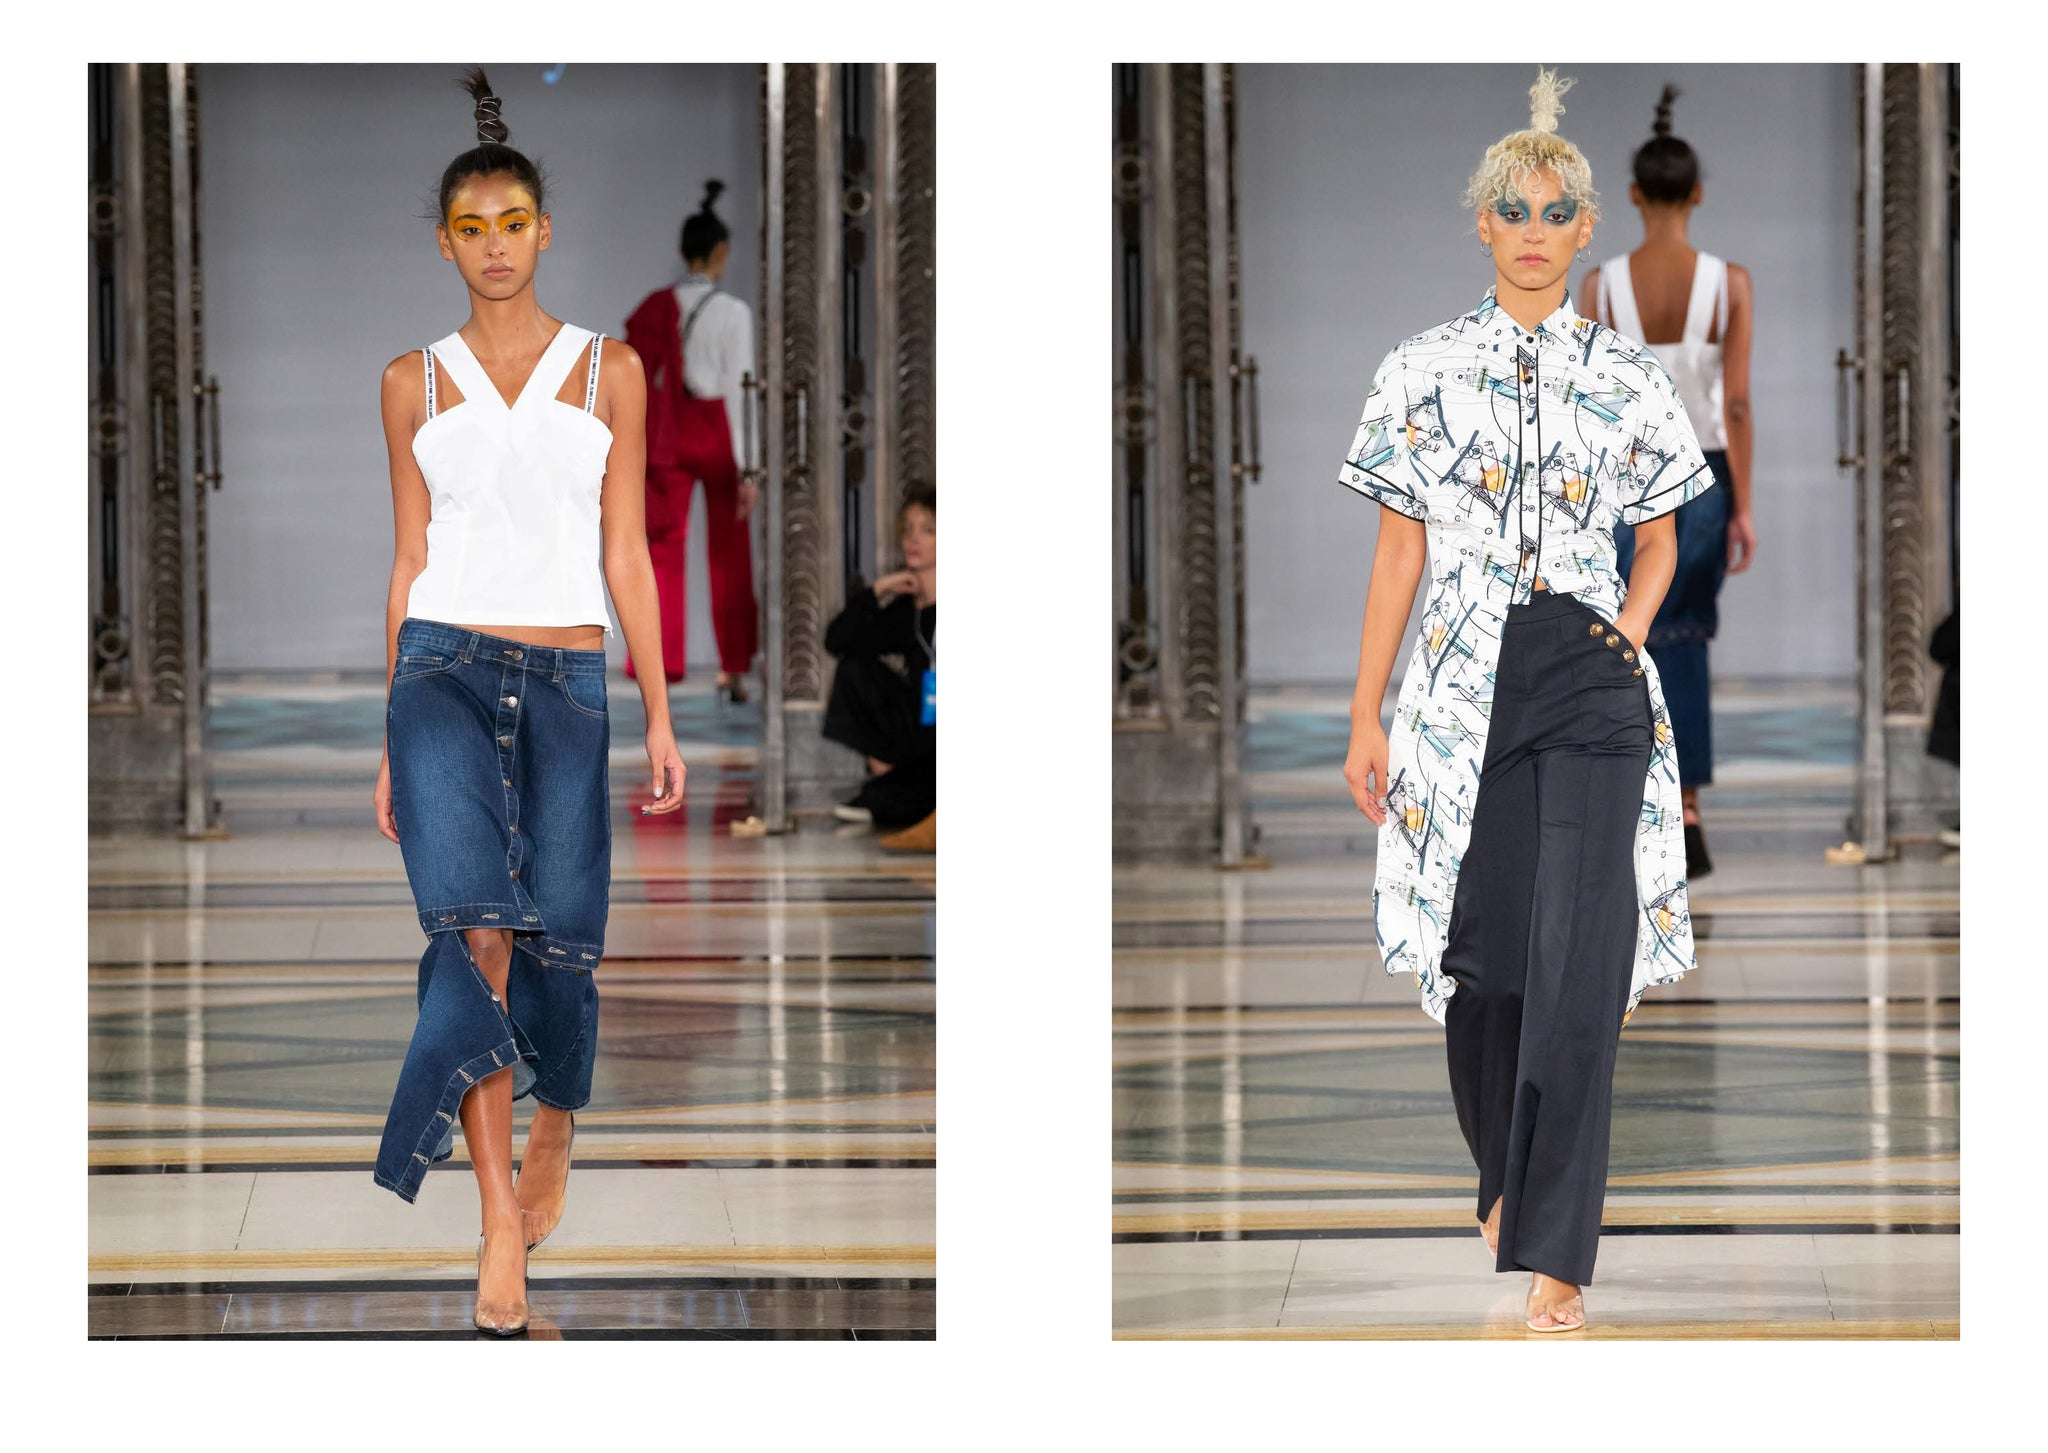 three fifty nine spring summer 2019 show at London fashion week looks 19 and 20